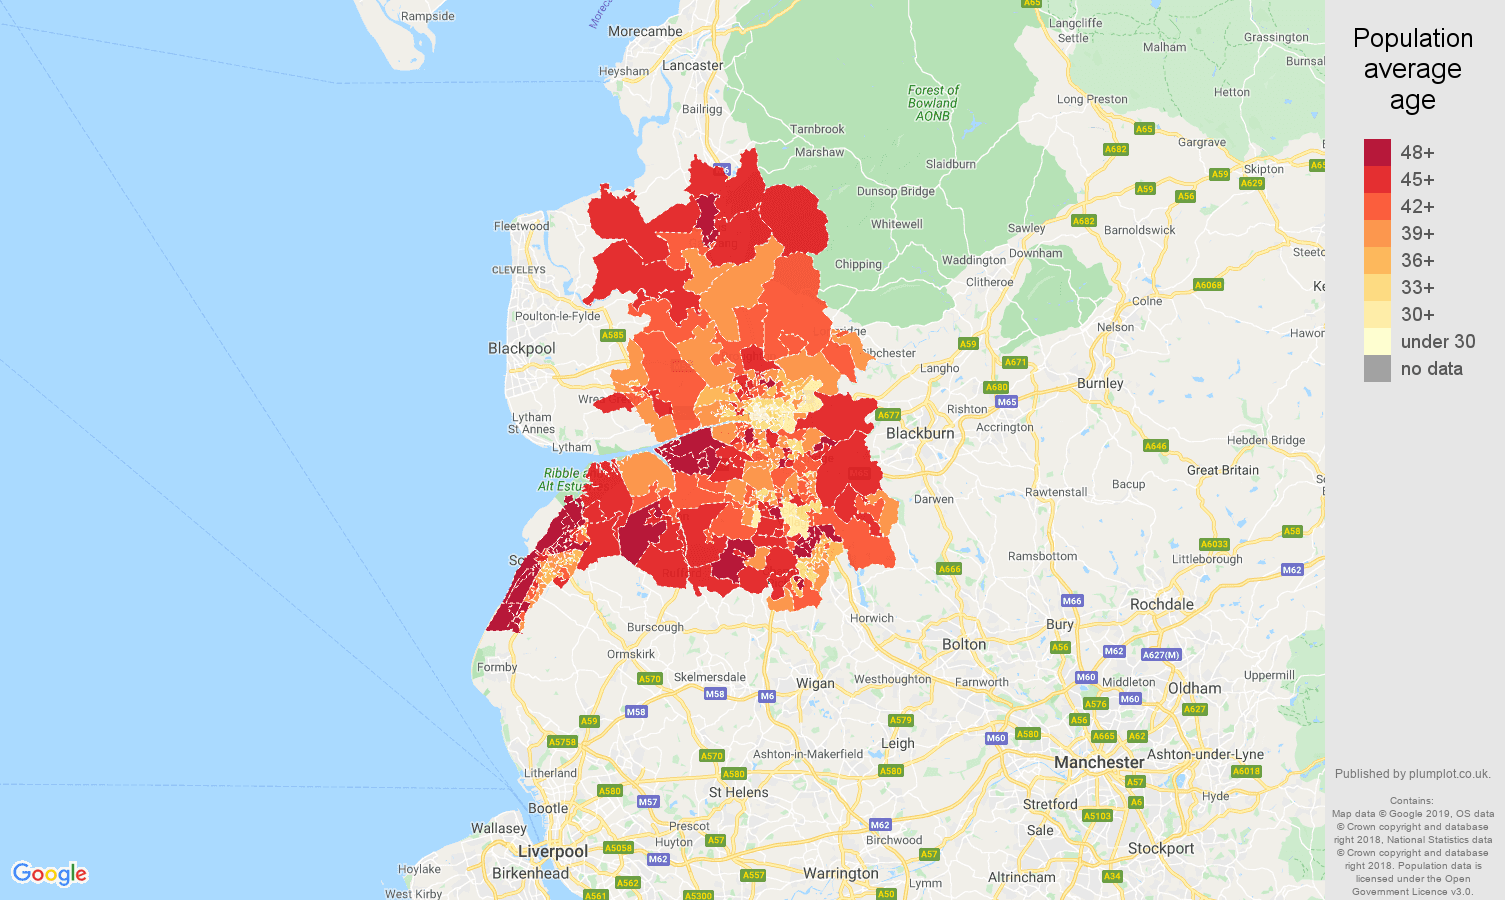 Preston population average age map